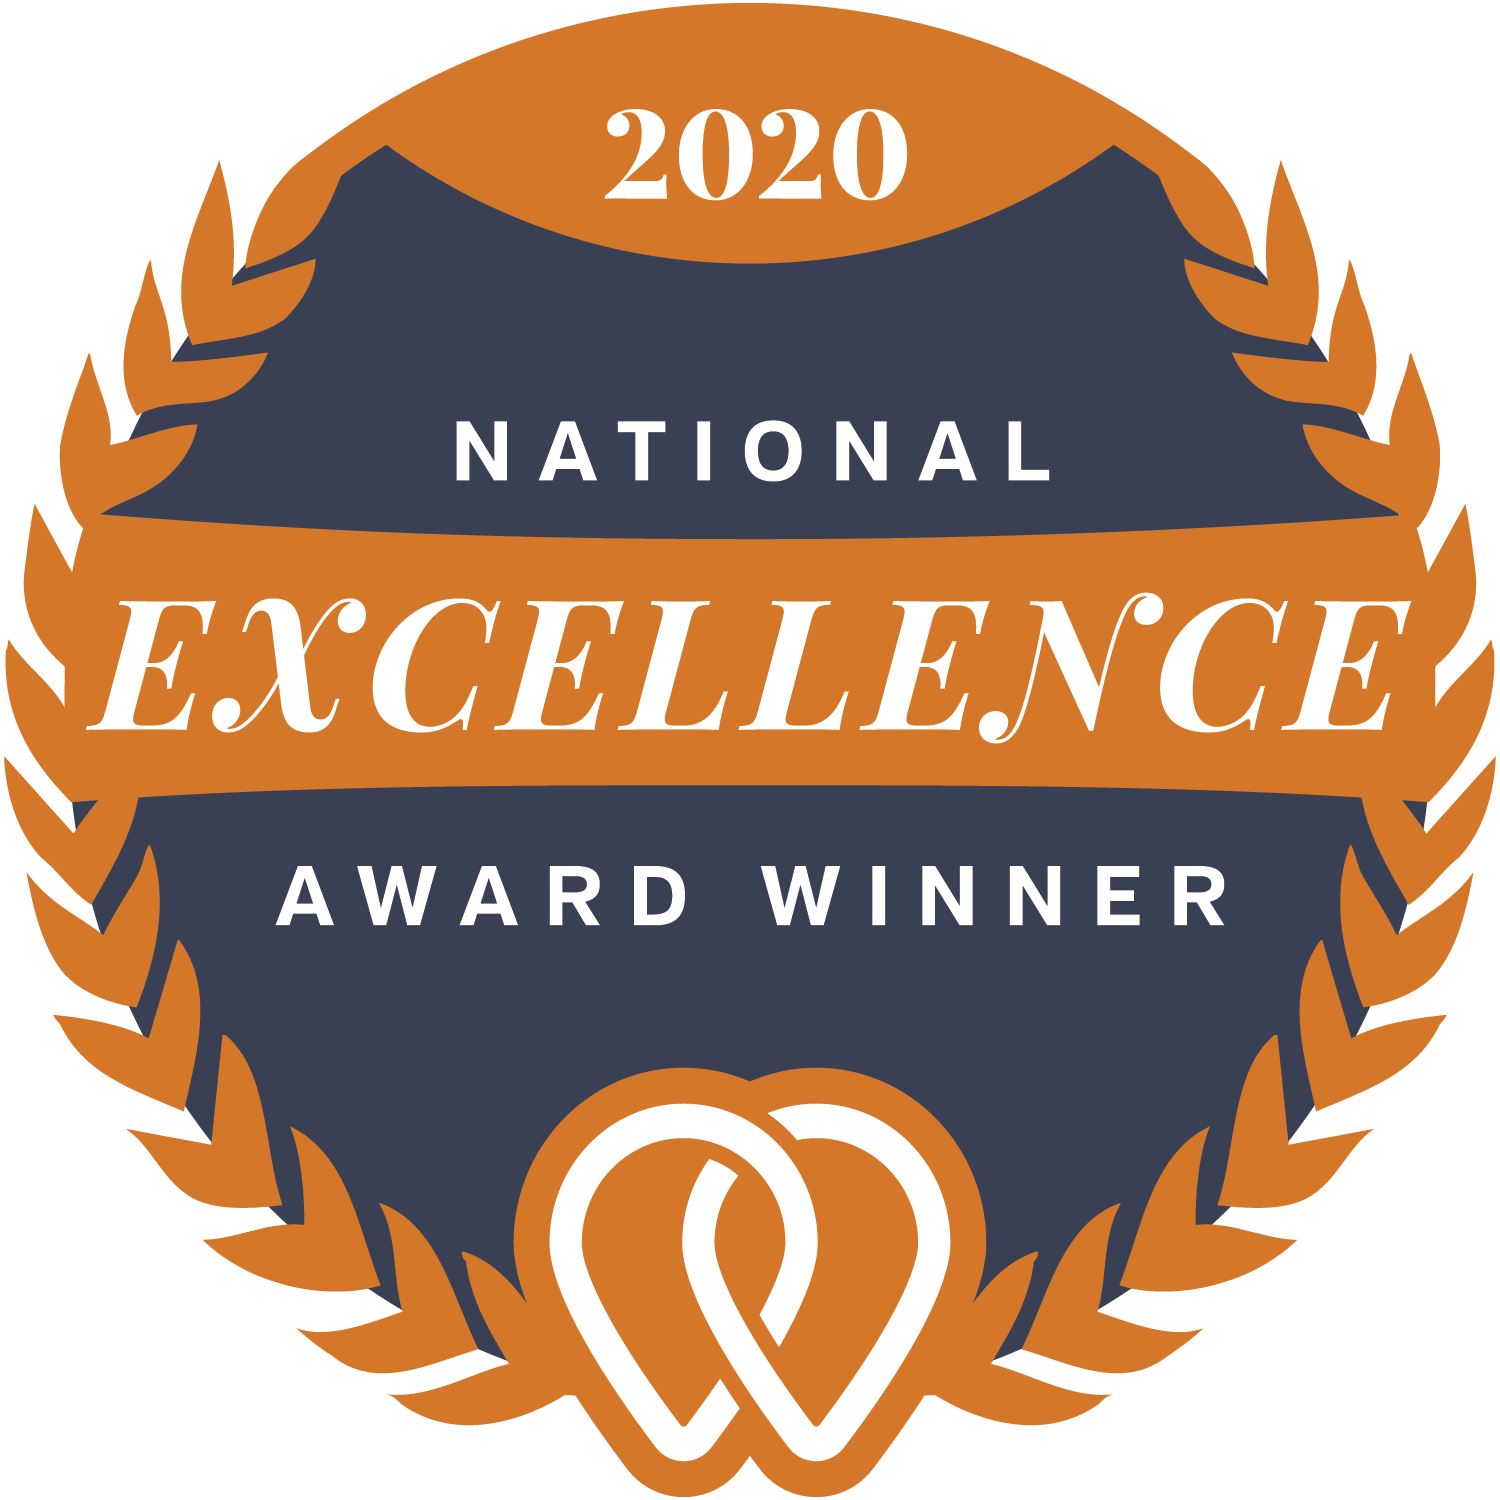 National-Excellence-Award-2020.png